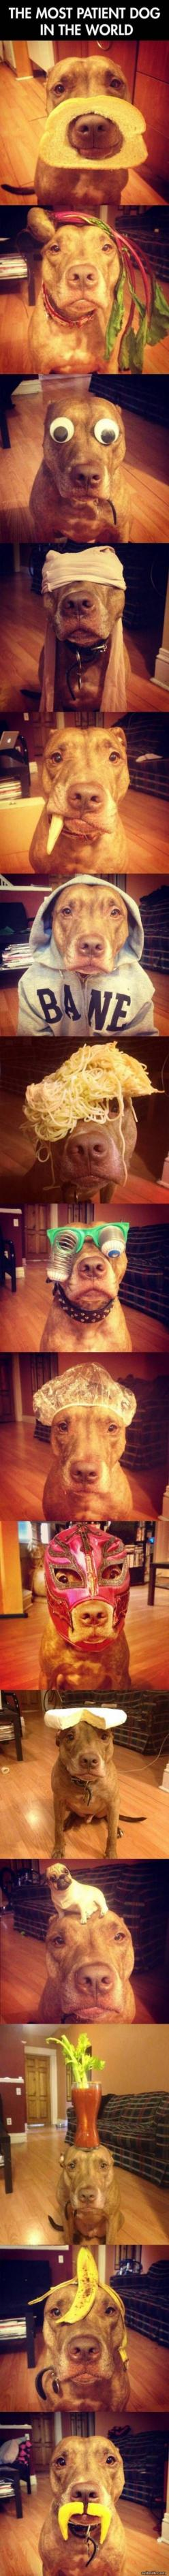 The most patient dog in the world: Animals, Funny Pics, Patient Dog, Dogs, Pitbull, Pit Bull, Funnies, Puppy